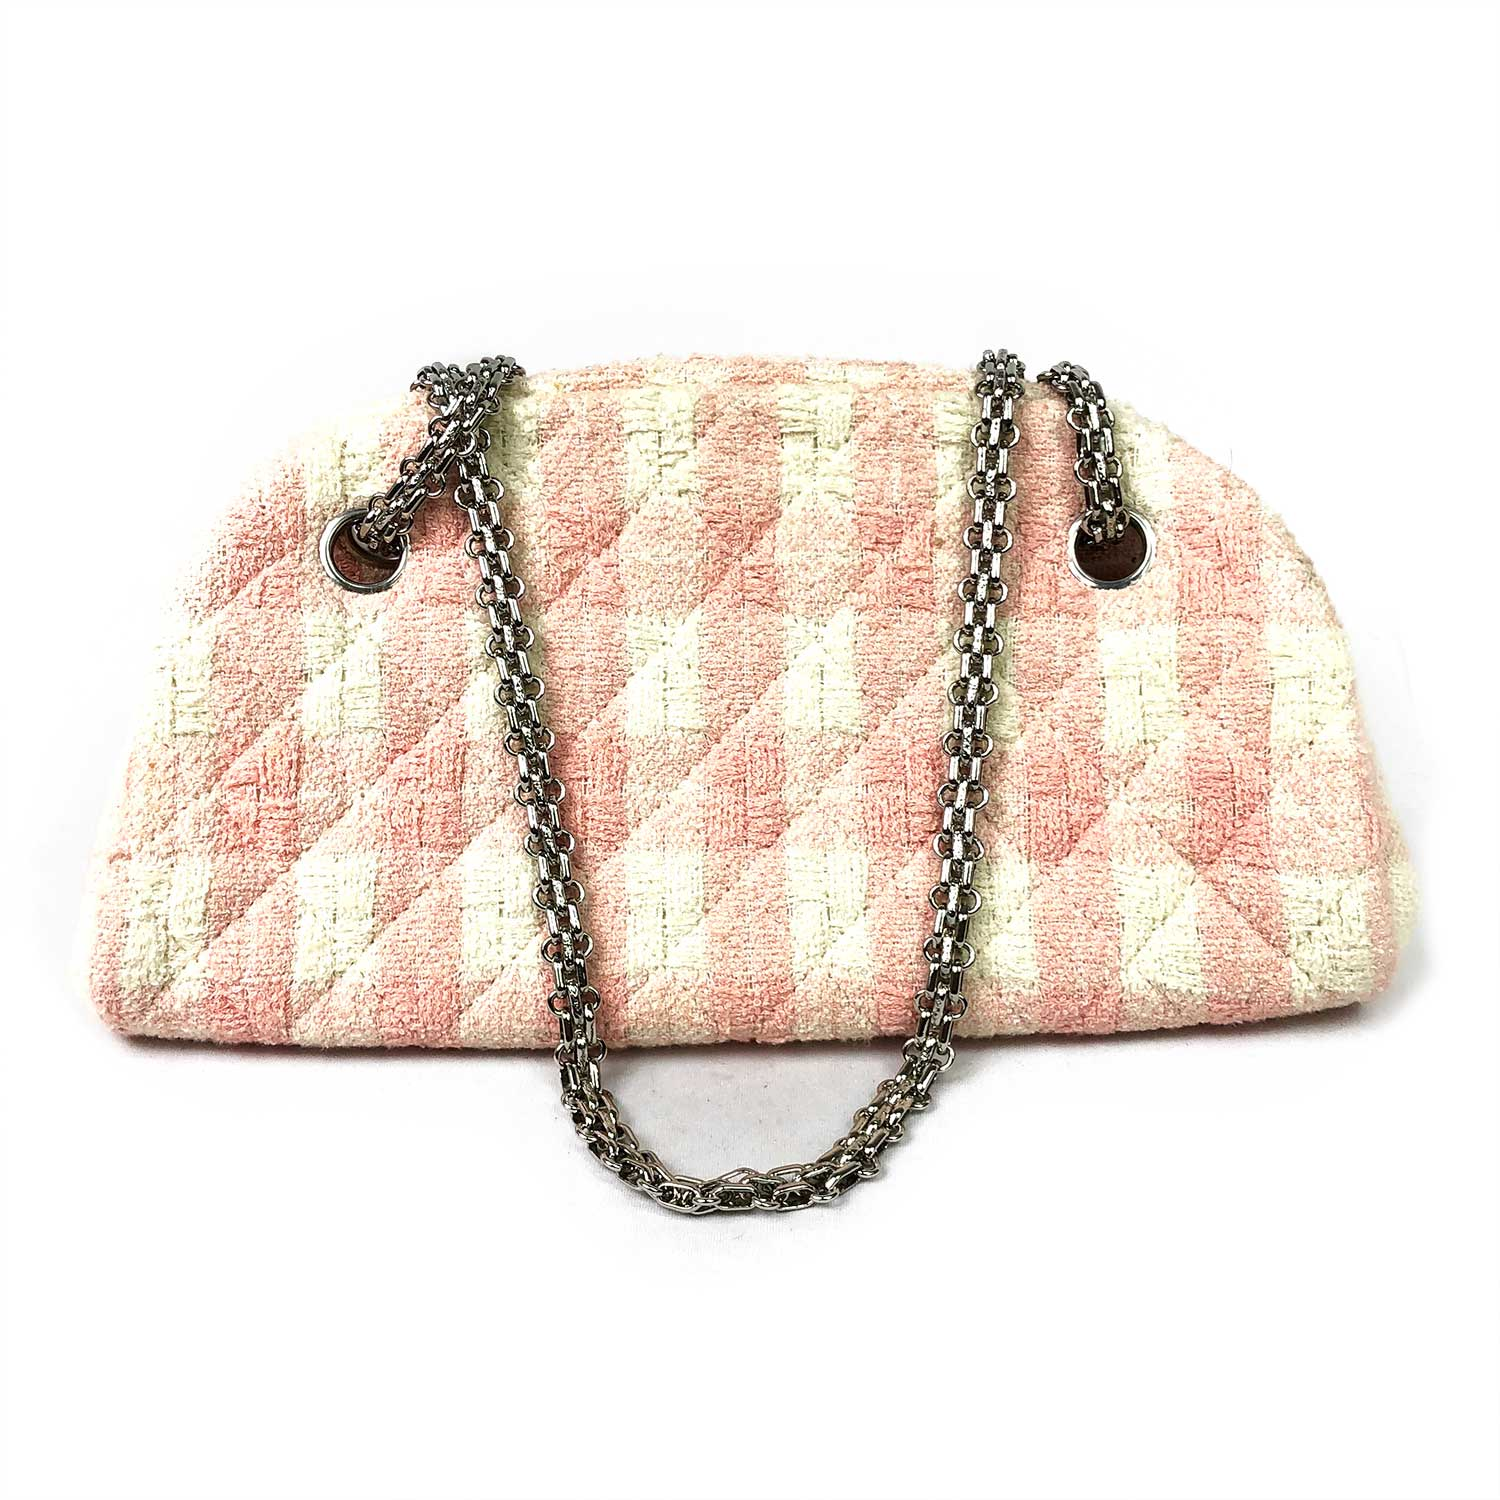 Bolsa Chanel Tweed Rosa e Offwhite